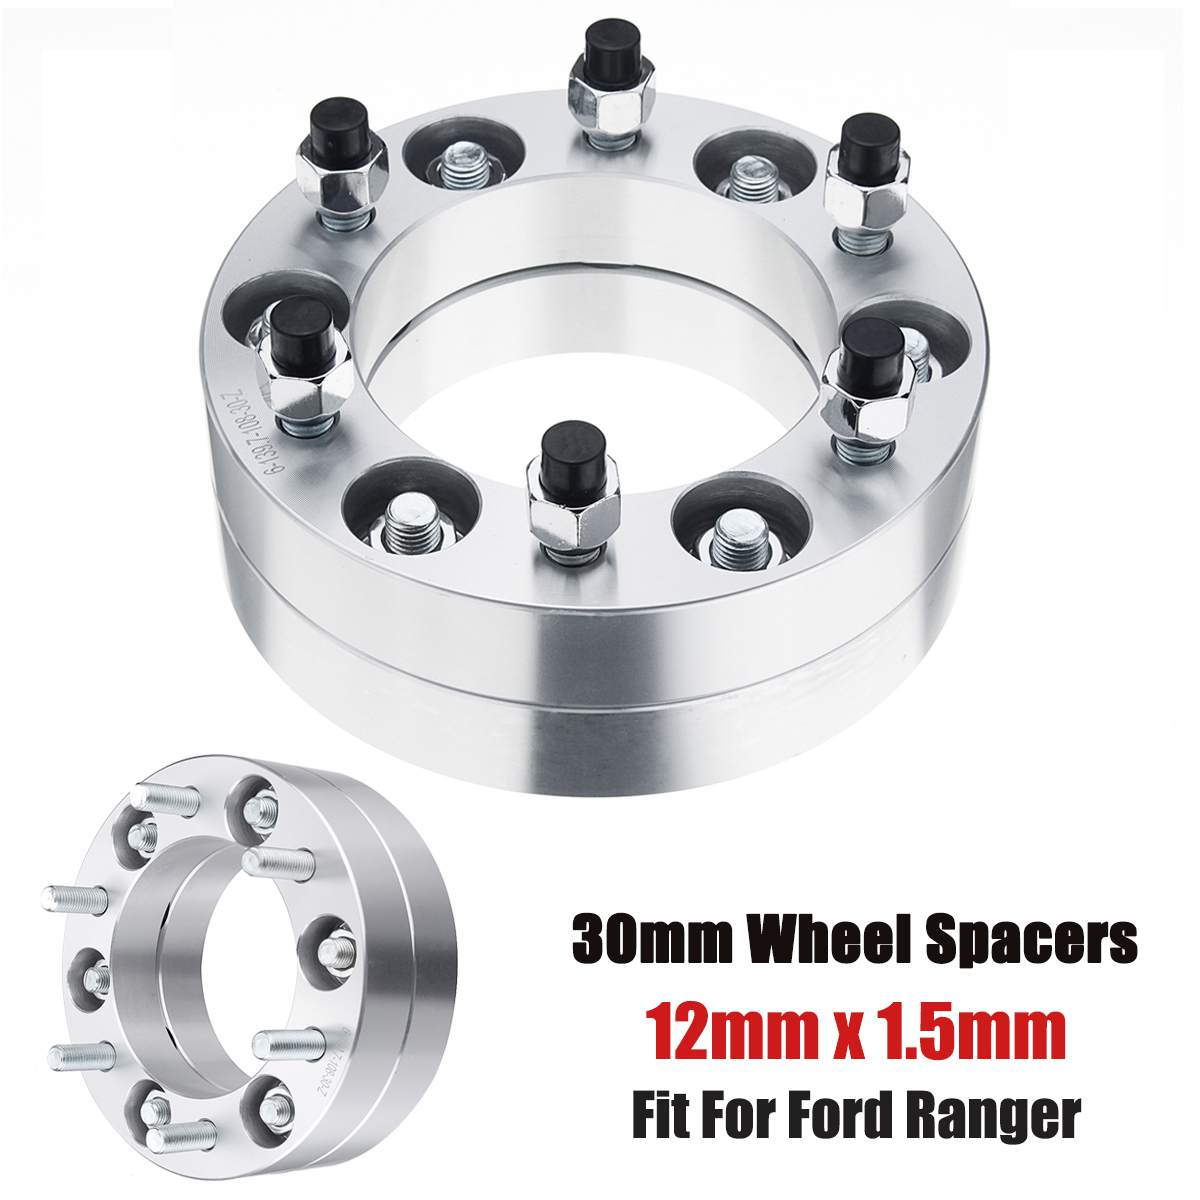 2 X 10mm ALLOY WHEEL SPACERS SHIMS SPACER UNIVERSAL FOR PEUGEOT 2 4X108 B